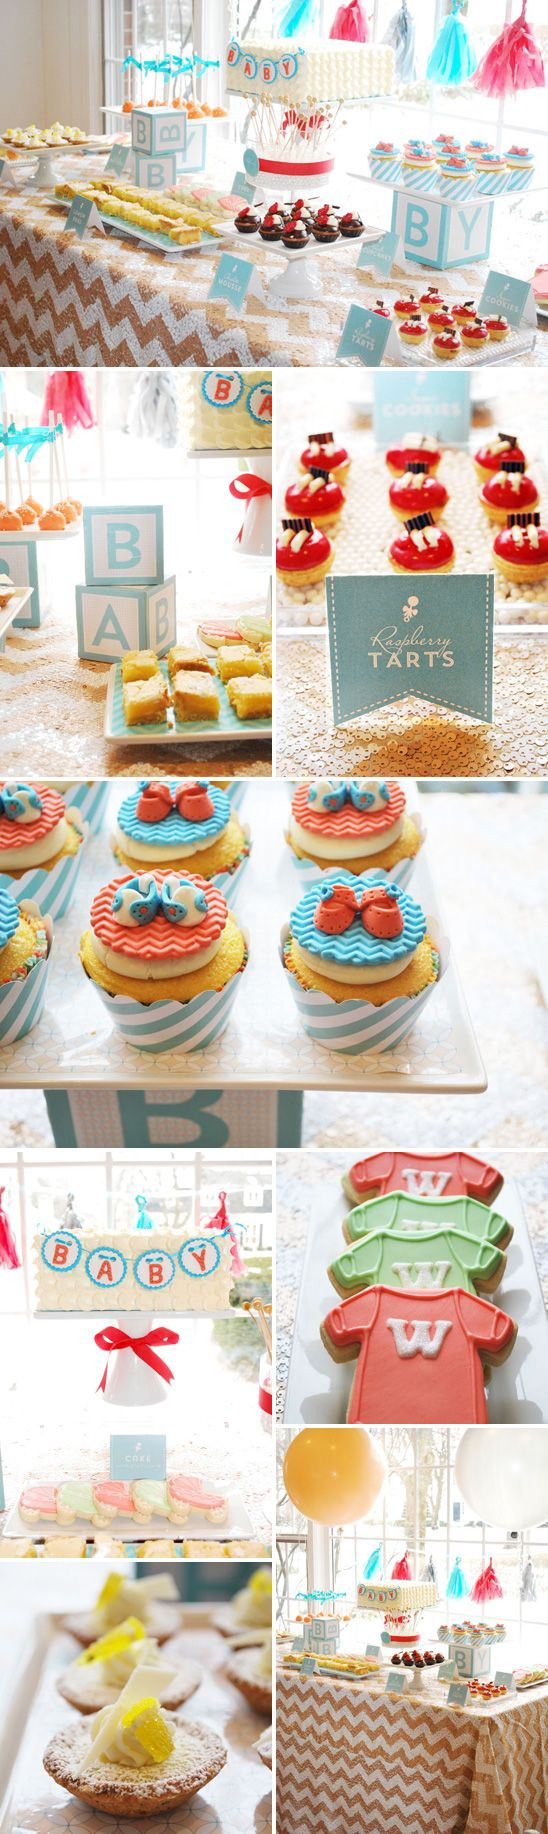 Dessert table in aqua and coral with a sequined chevron table cloth